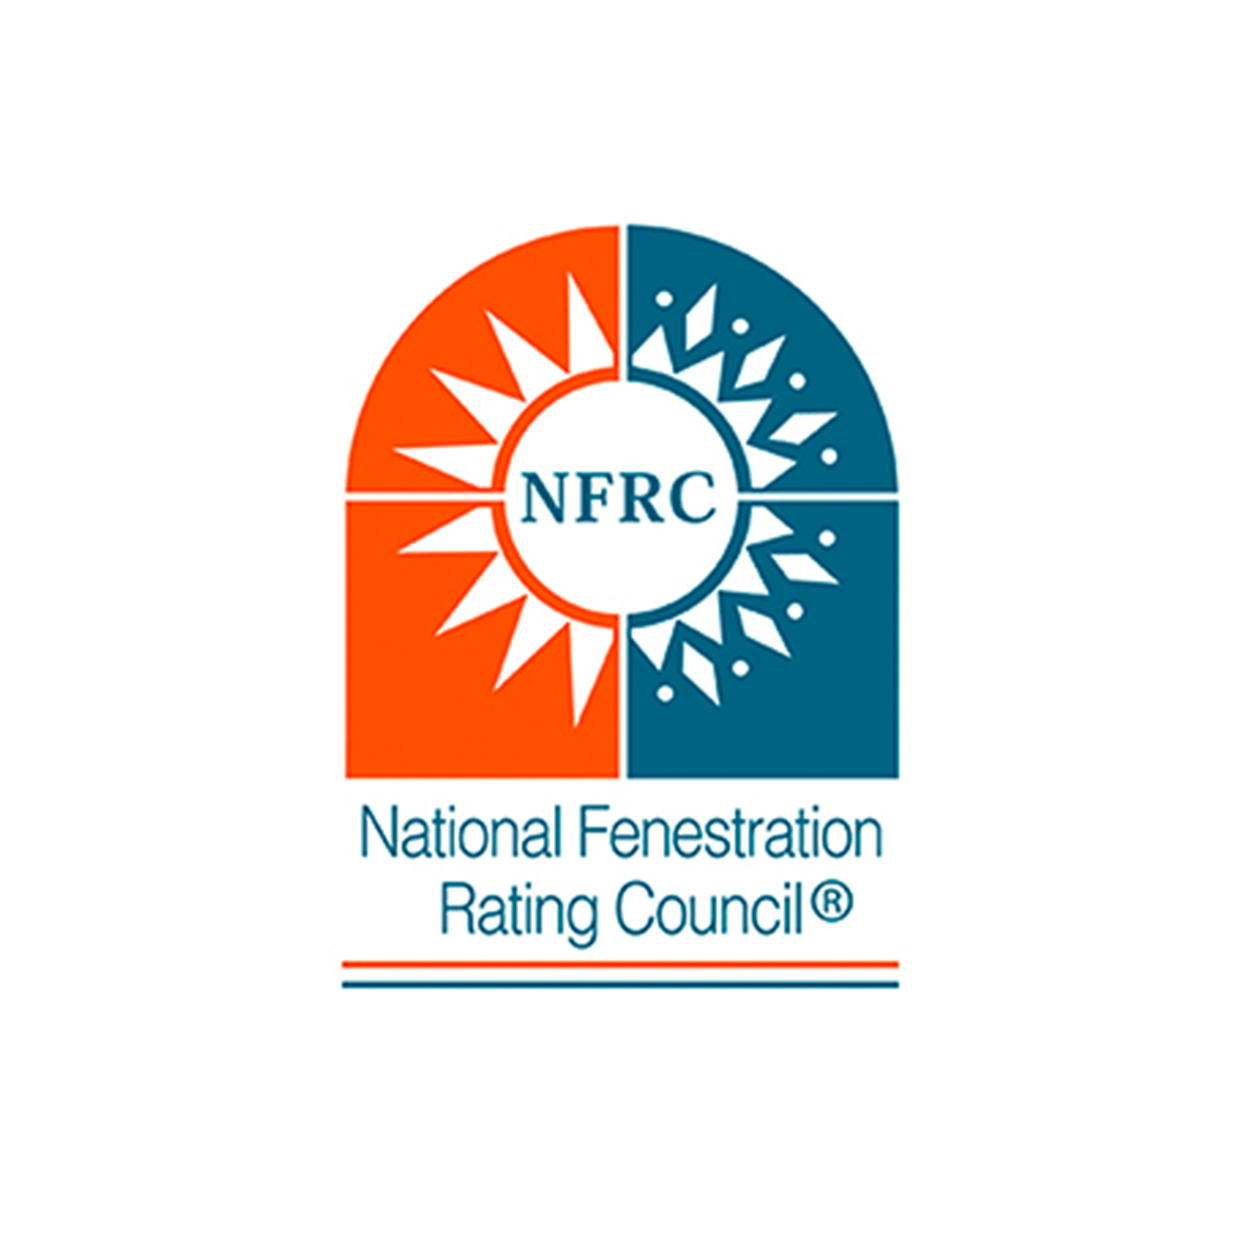 All Window Source products come with voluntary National Fenestration Rating Council (NFRC) labels so that you can compare with confidence.